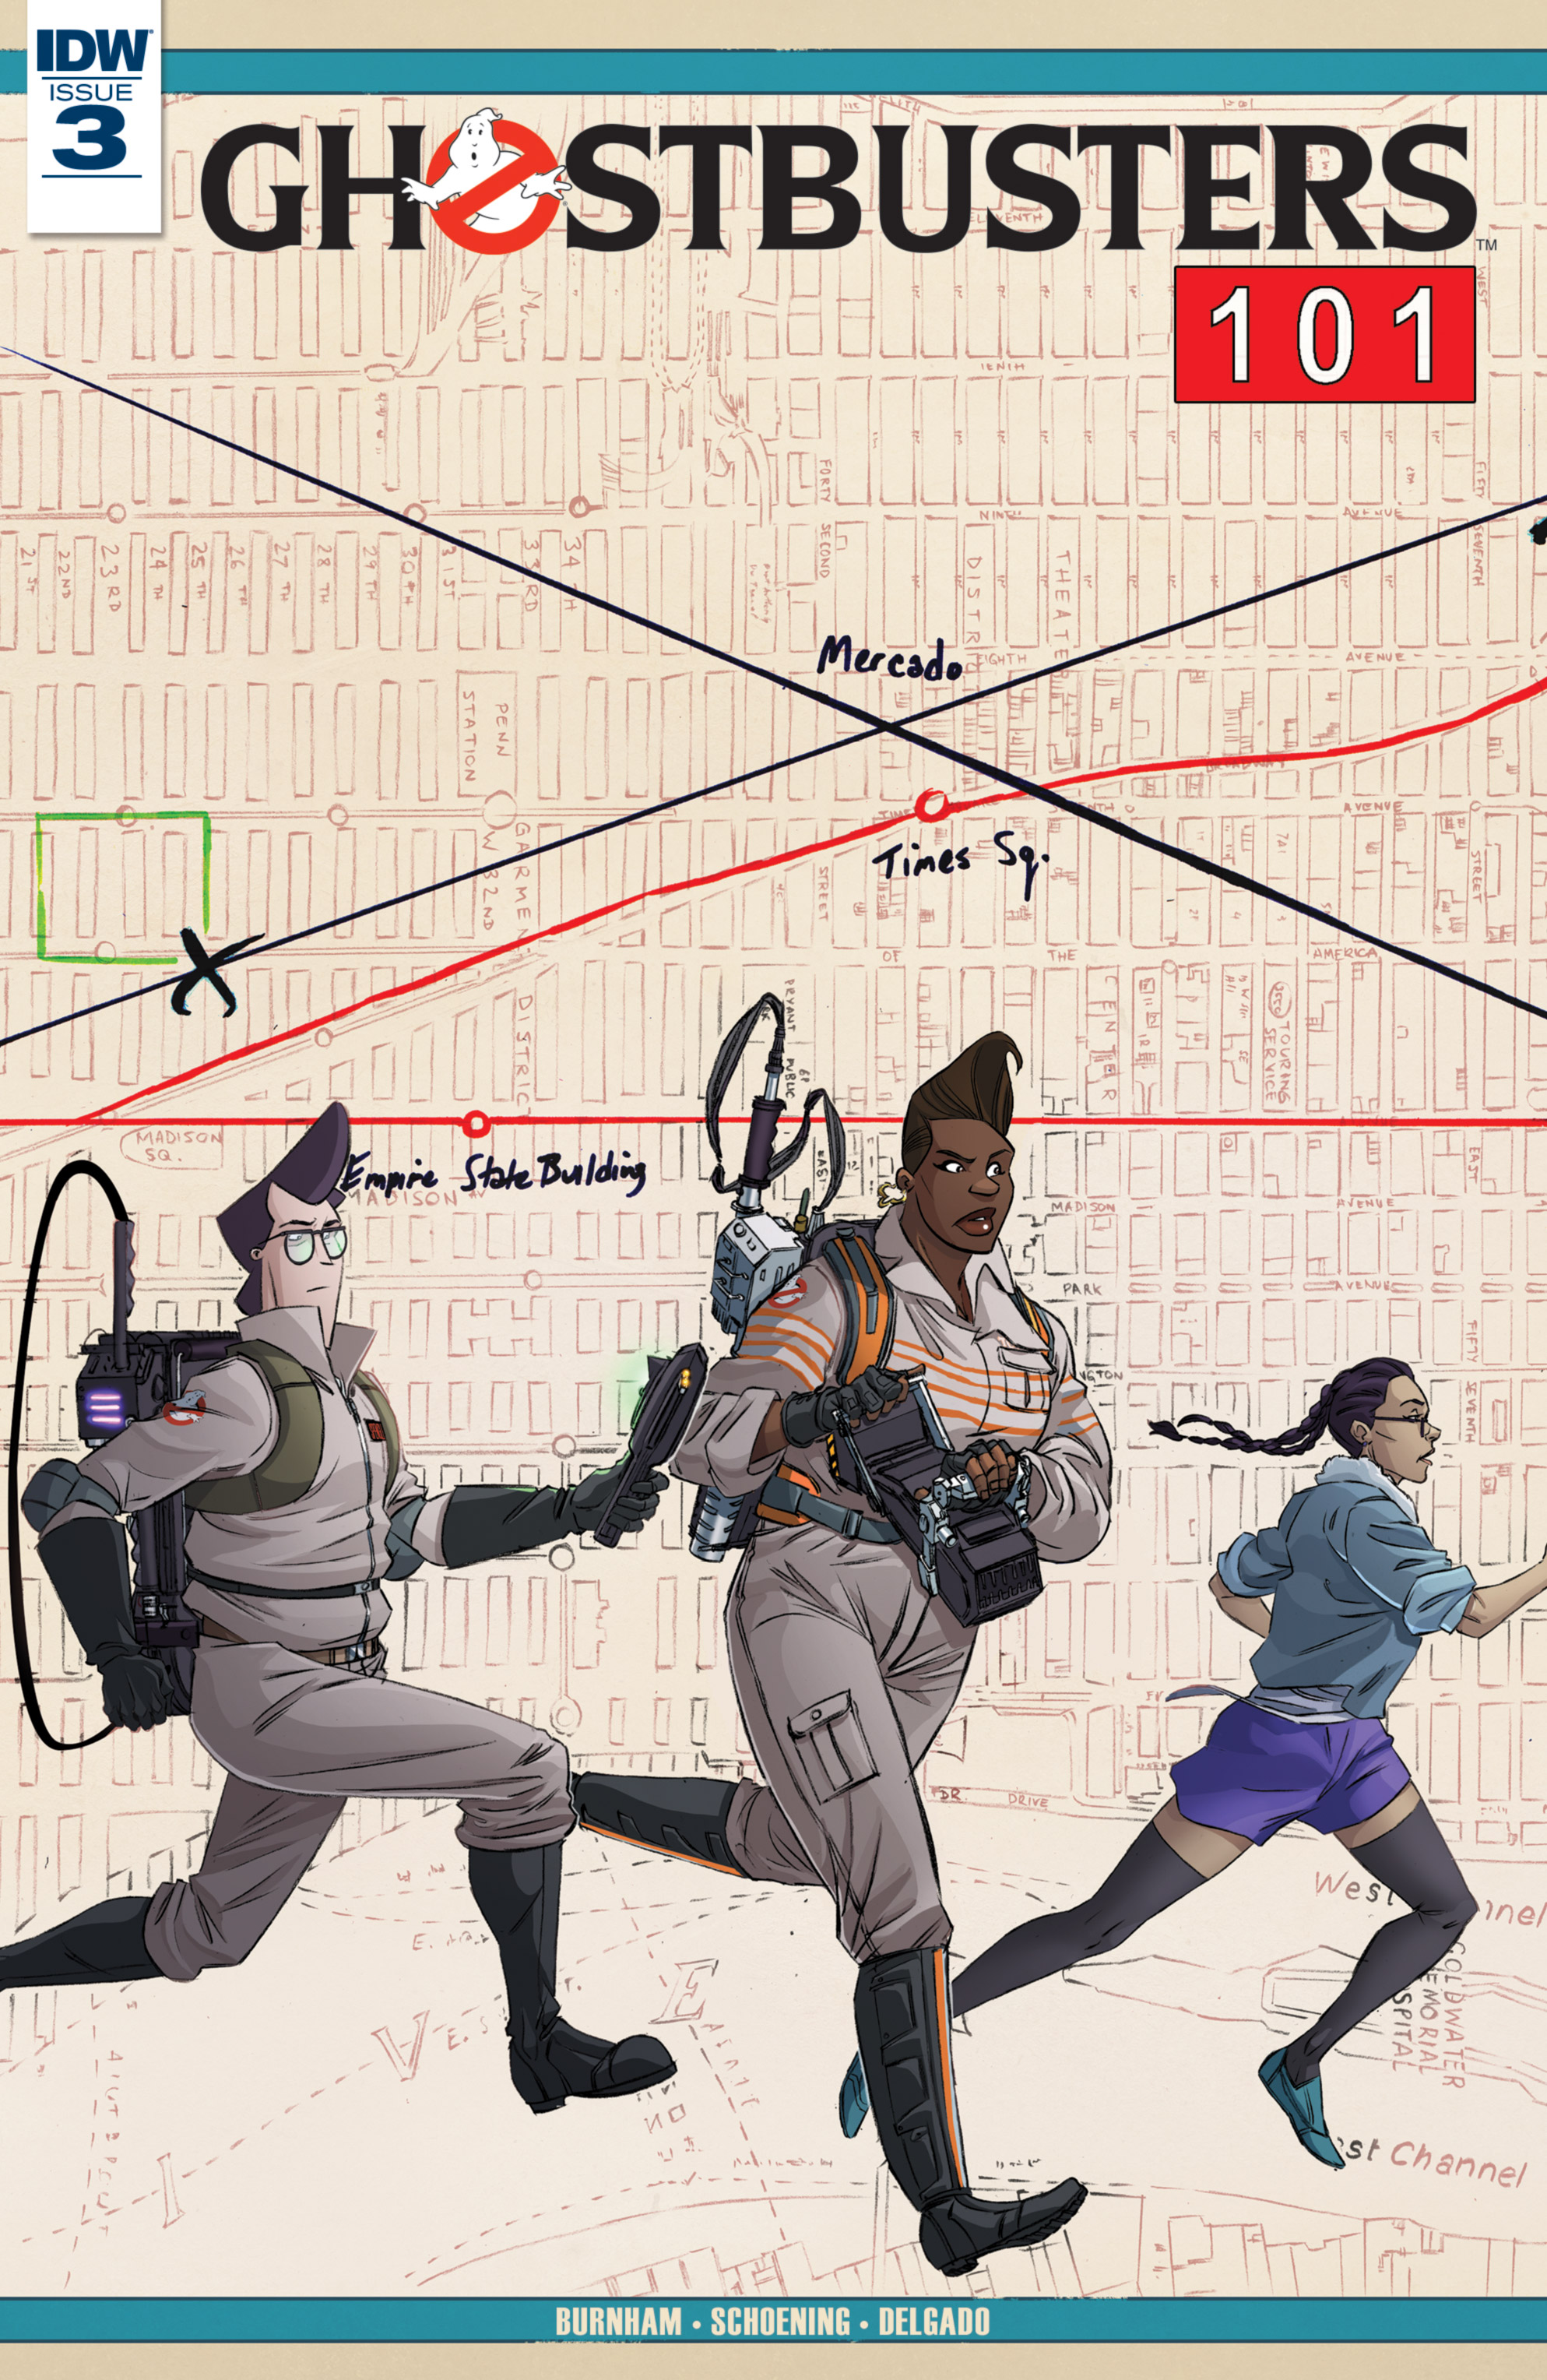 Read online Ghostbusters 101 comic -  Issue #3 - 1